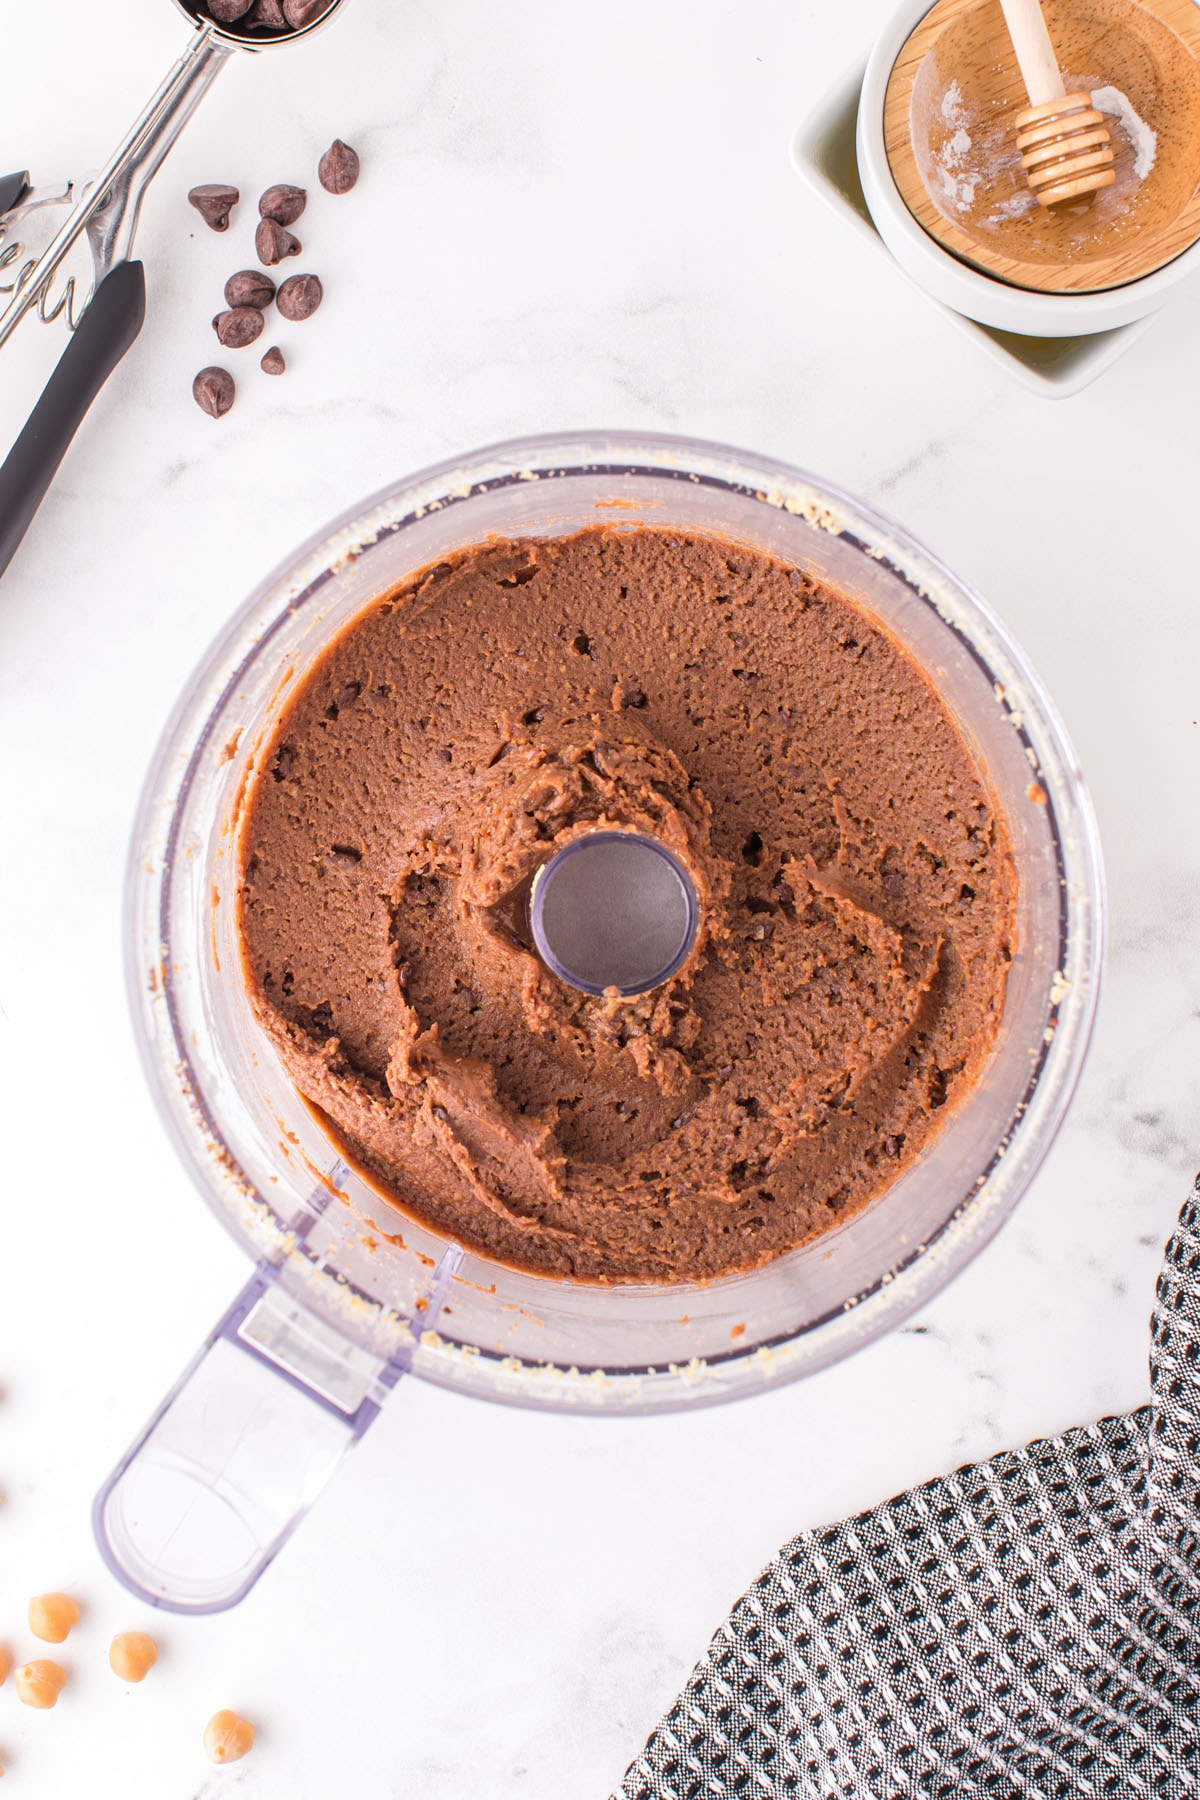 Add chocolate chips and all remaining ingredients to the chickpea powder